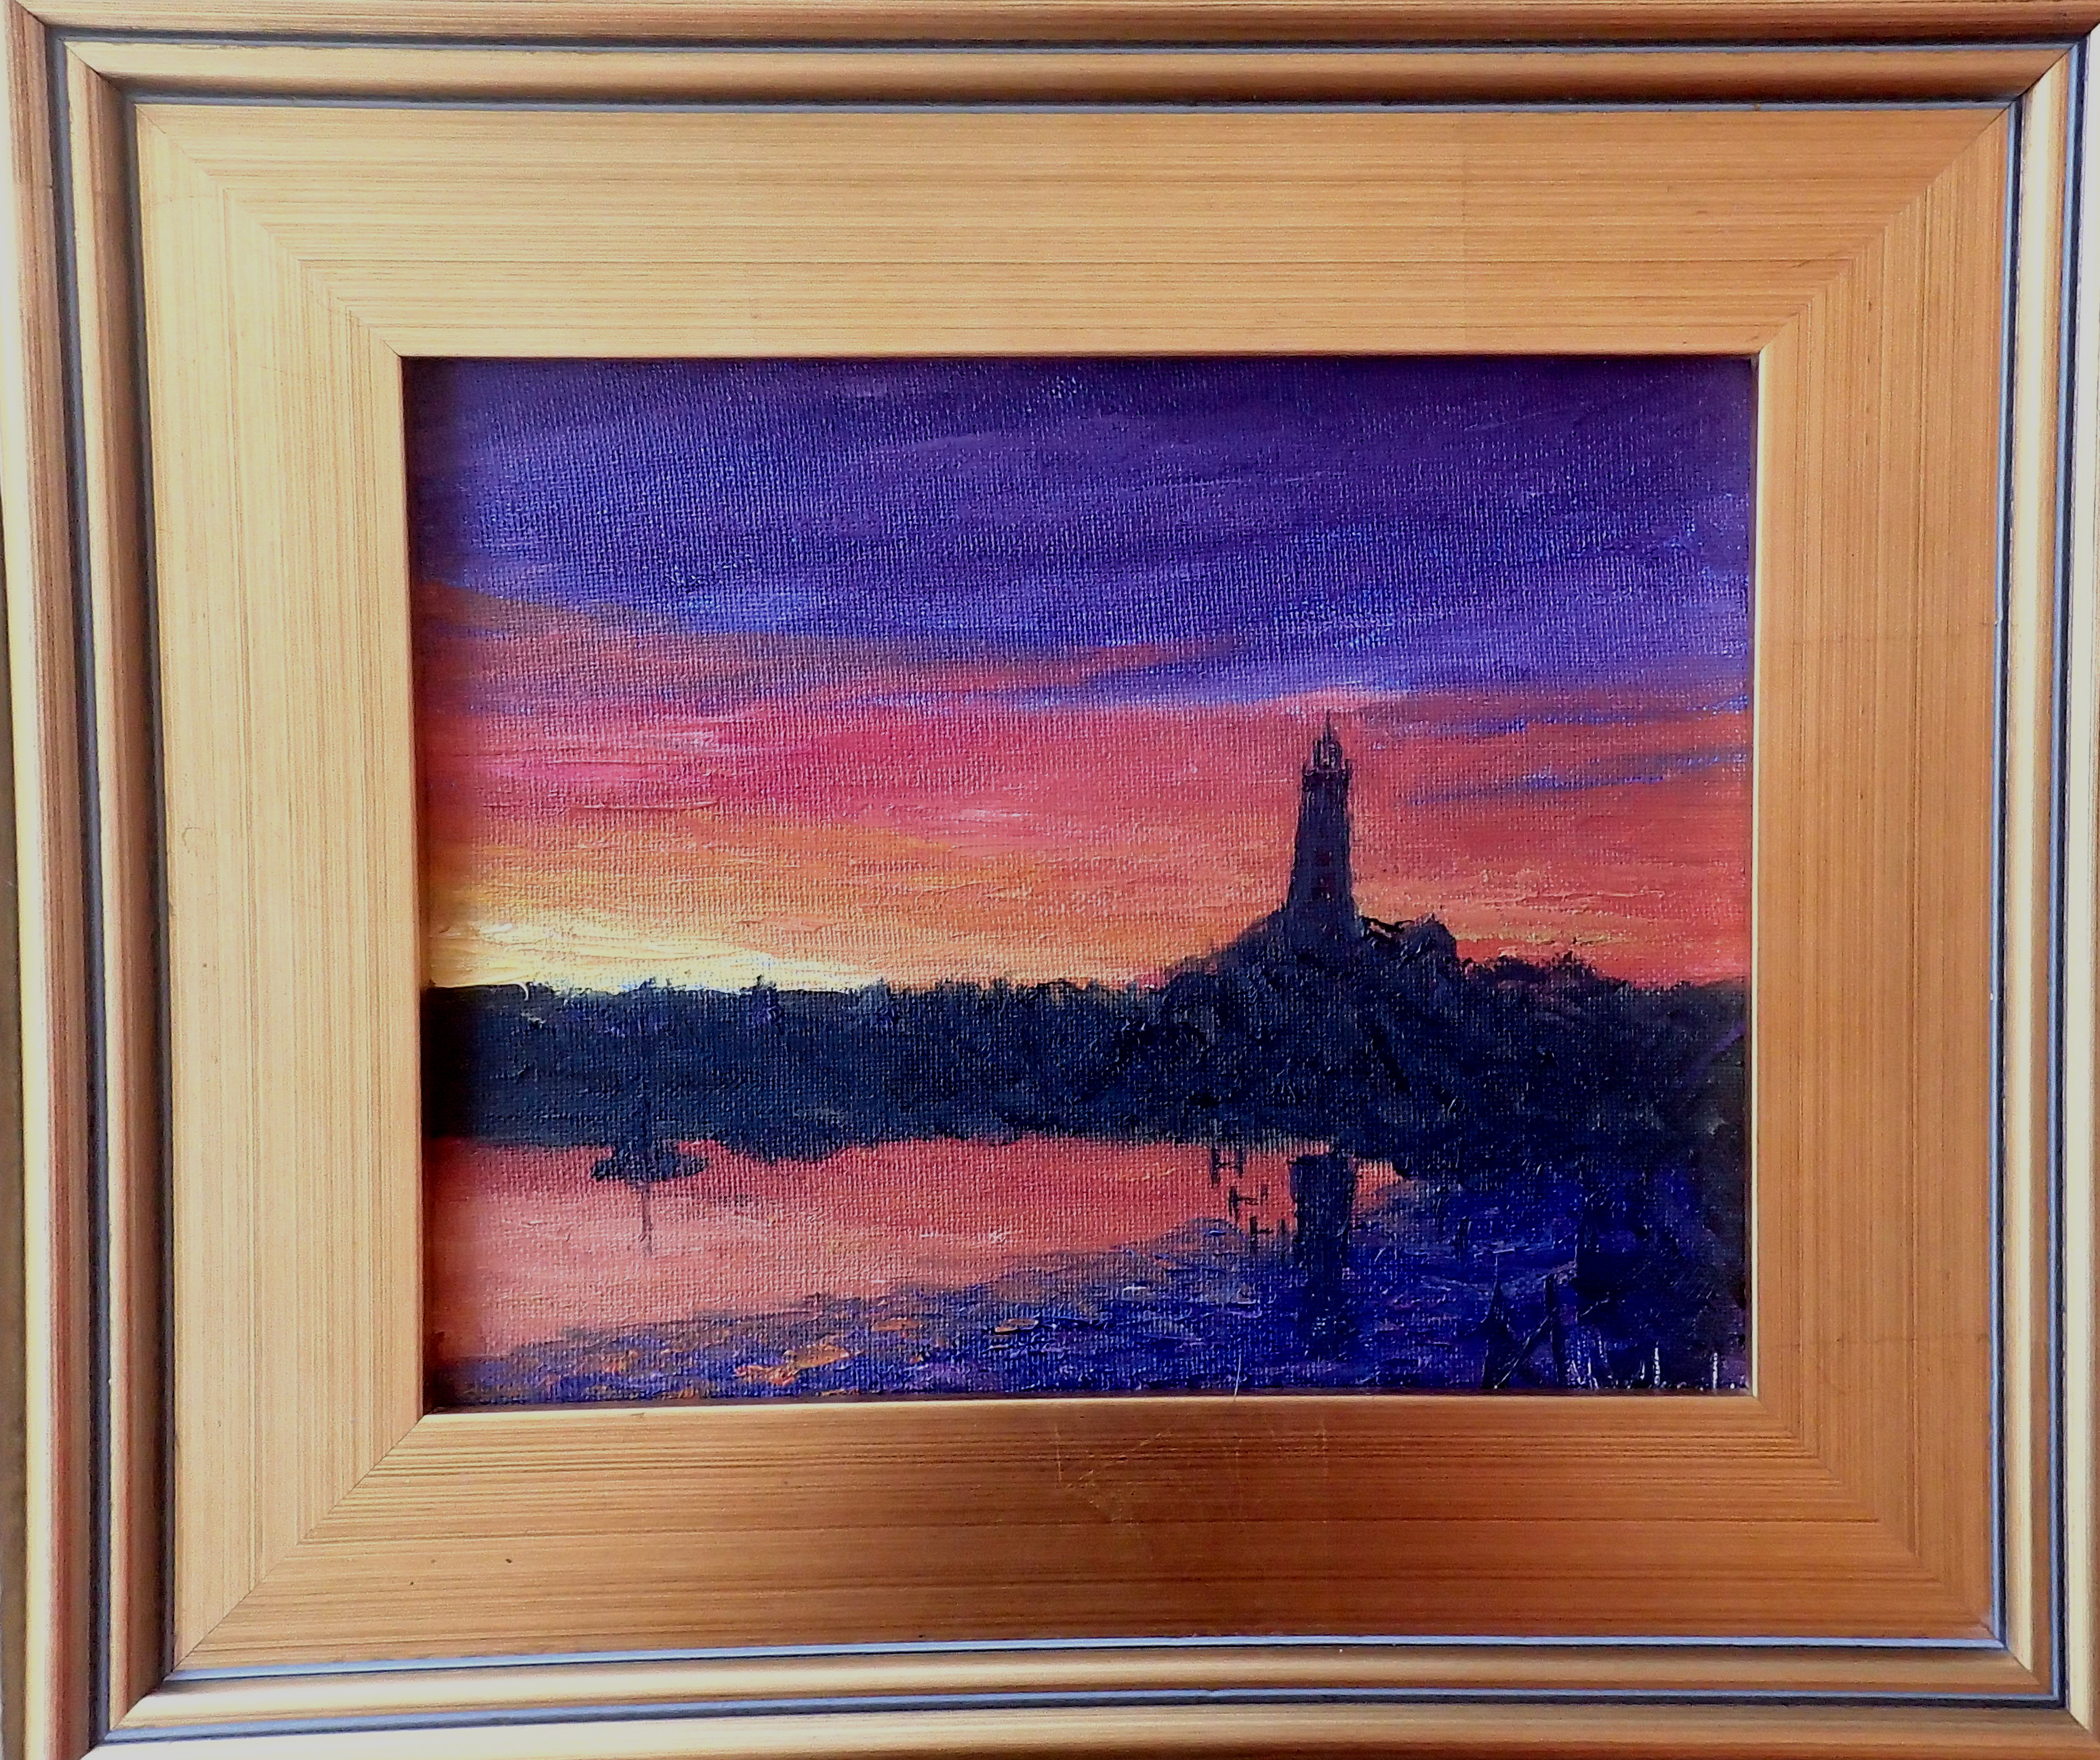 © Marlee Mason 8x10 Original Oil Painting on Canvas   This is a painting of Hope Town Harbour from photograph as darkness looms on a village with the only source of light the sunlight.  Sunset arrive